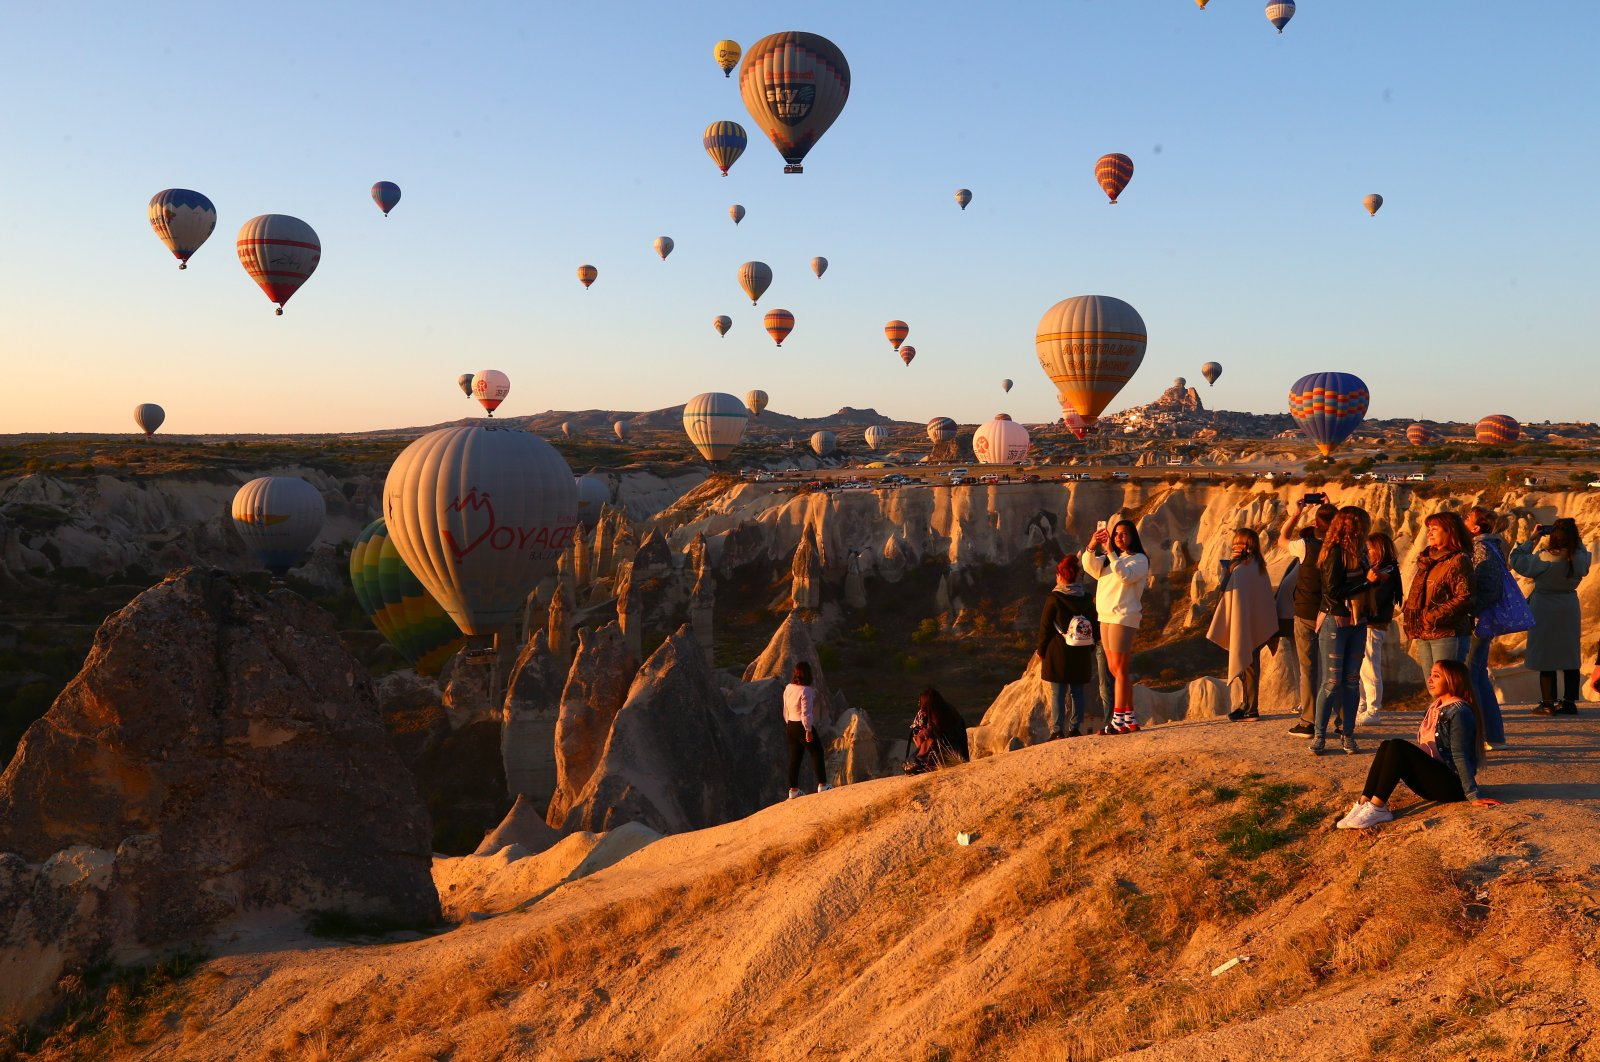 Tourists watch and take photographs as air balloons take to the sky, inNevşehir, Turkey, Oct. 3, 2021. (AA Photo)